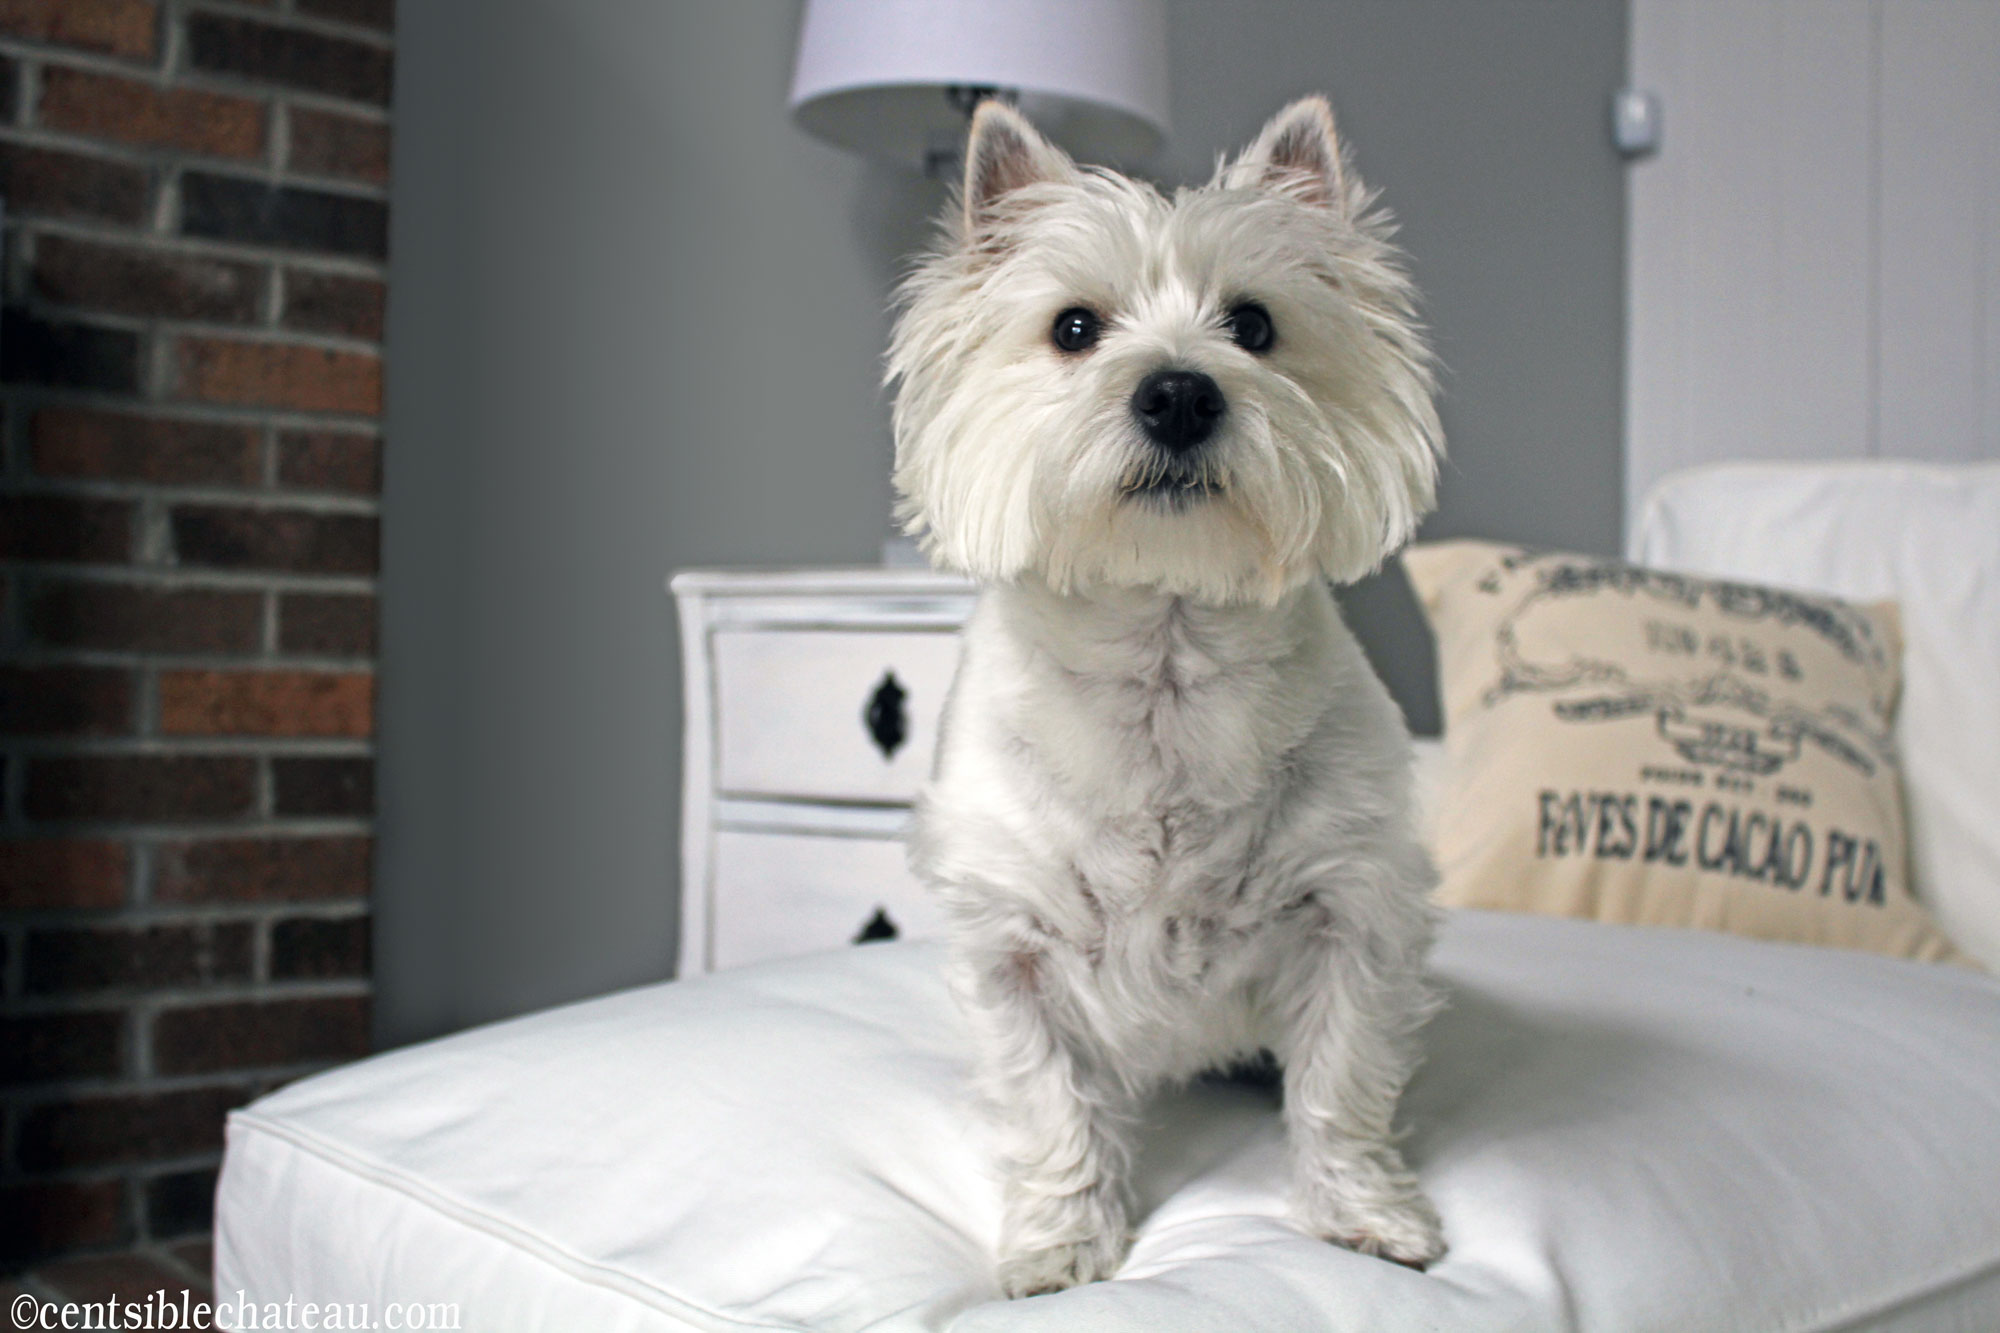 My cute puppy really loves the white ikea couch, but that's part of the problem! CentsibleChateau.com